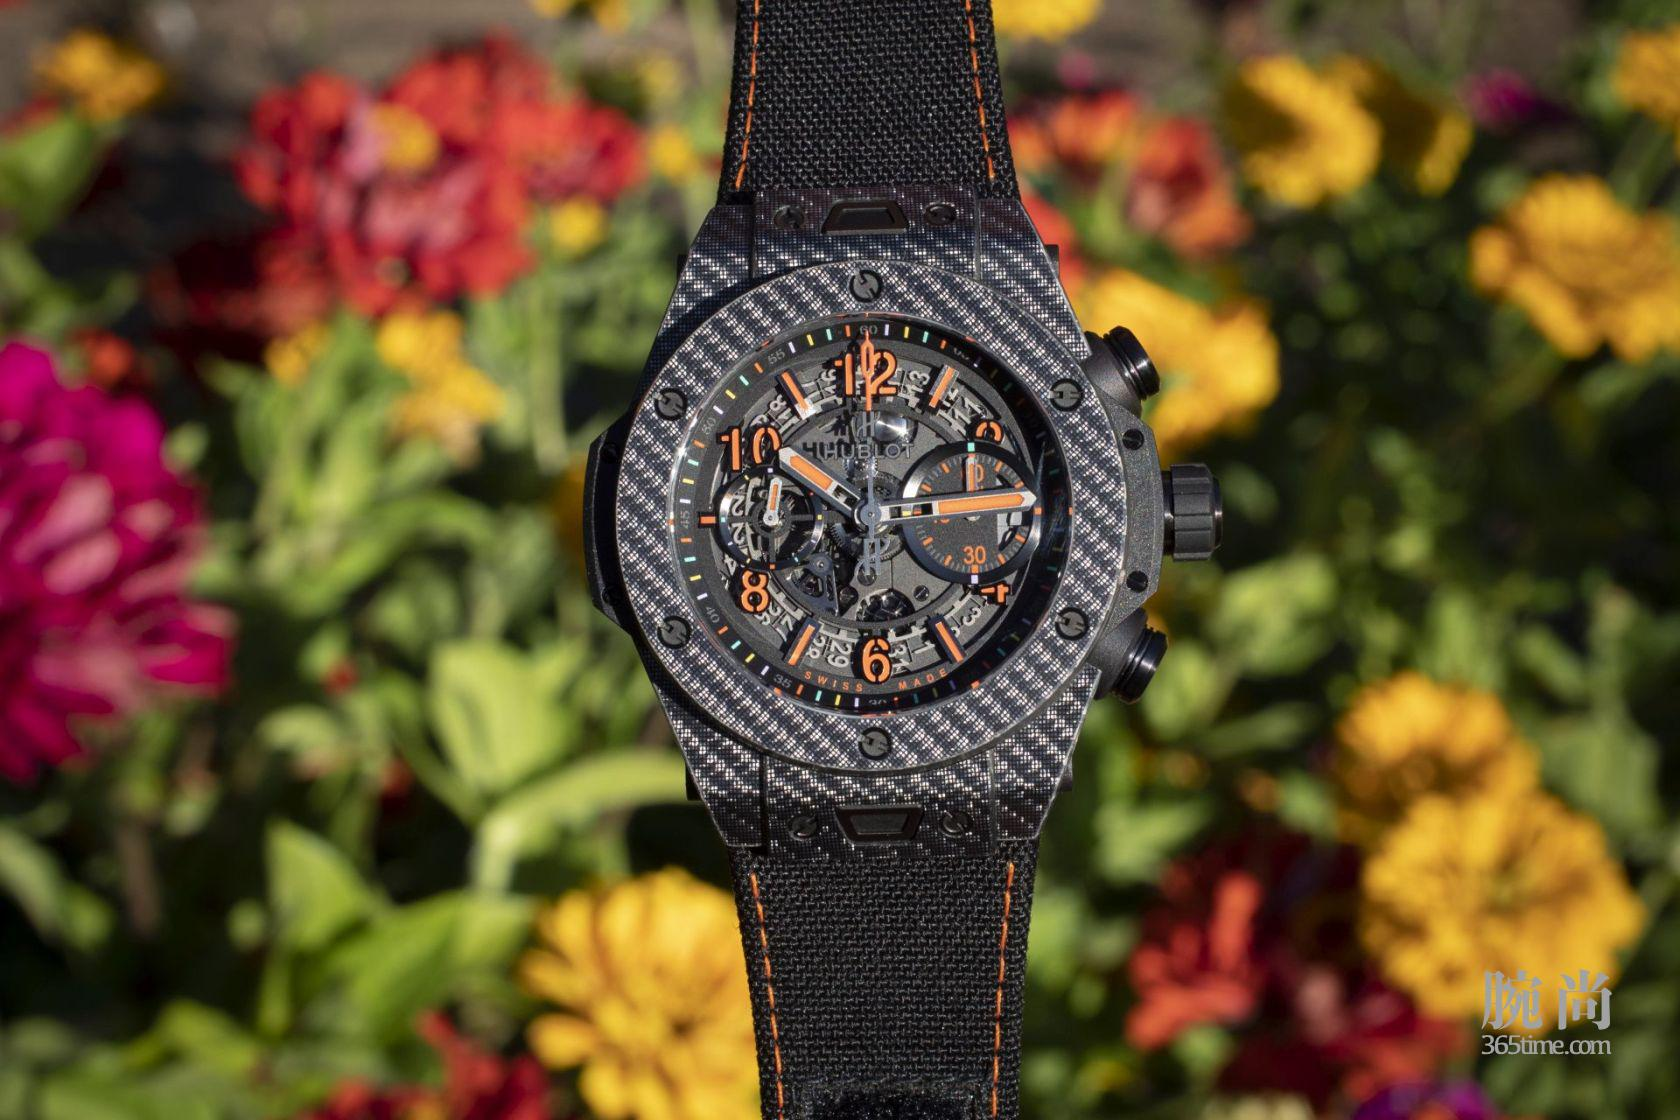 Hublot-Big-Bang-Unico-Best-Buddies-Limited-Edition-1.jpg